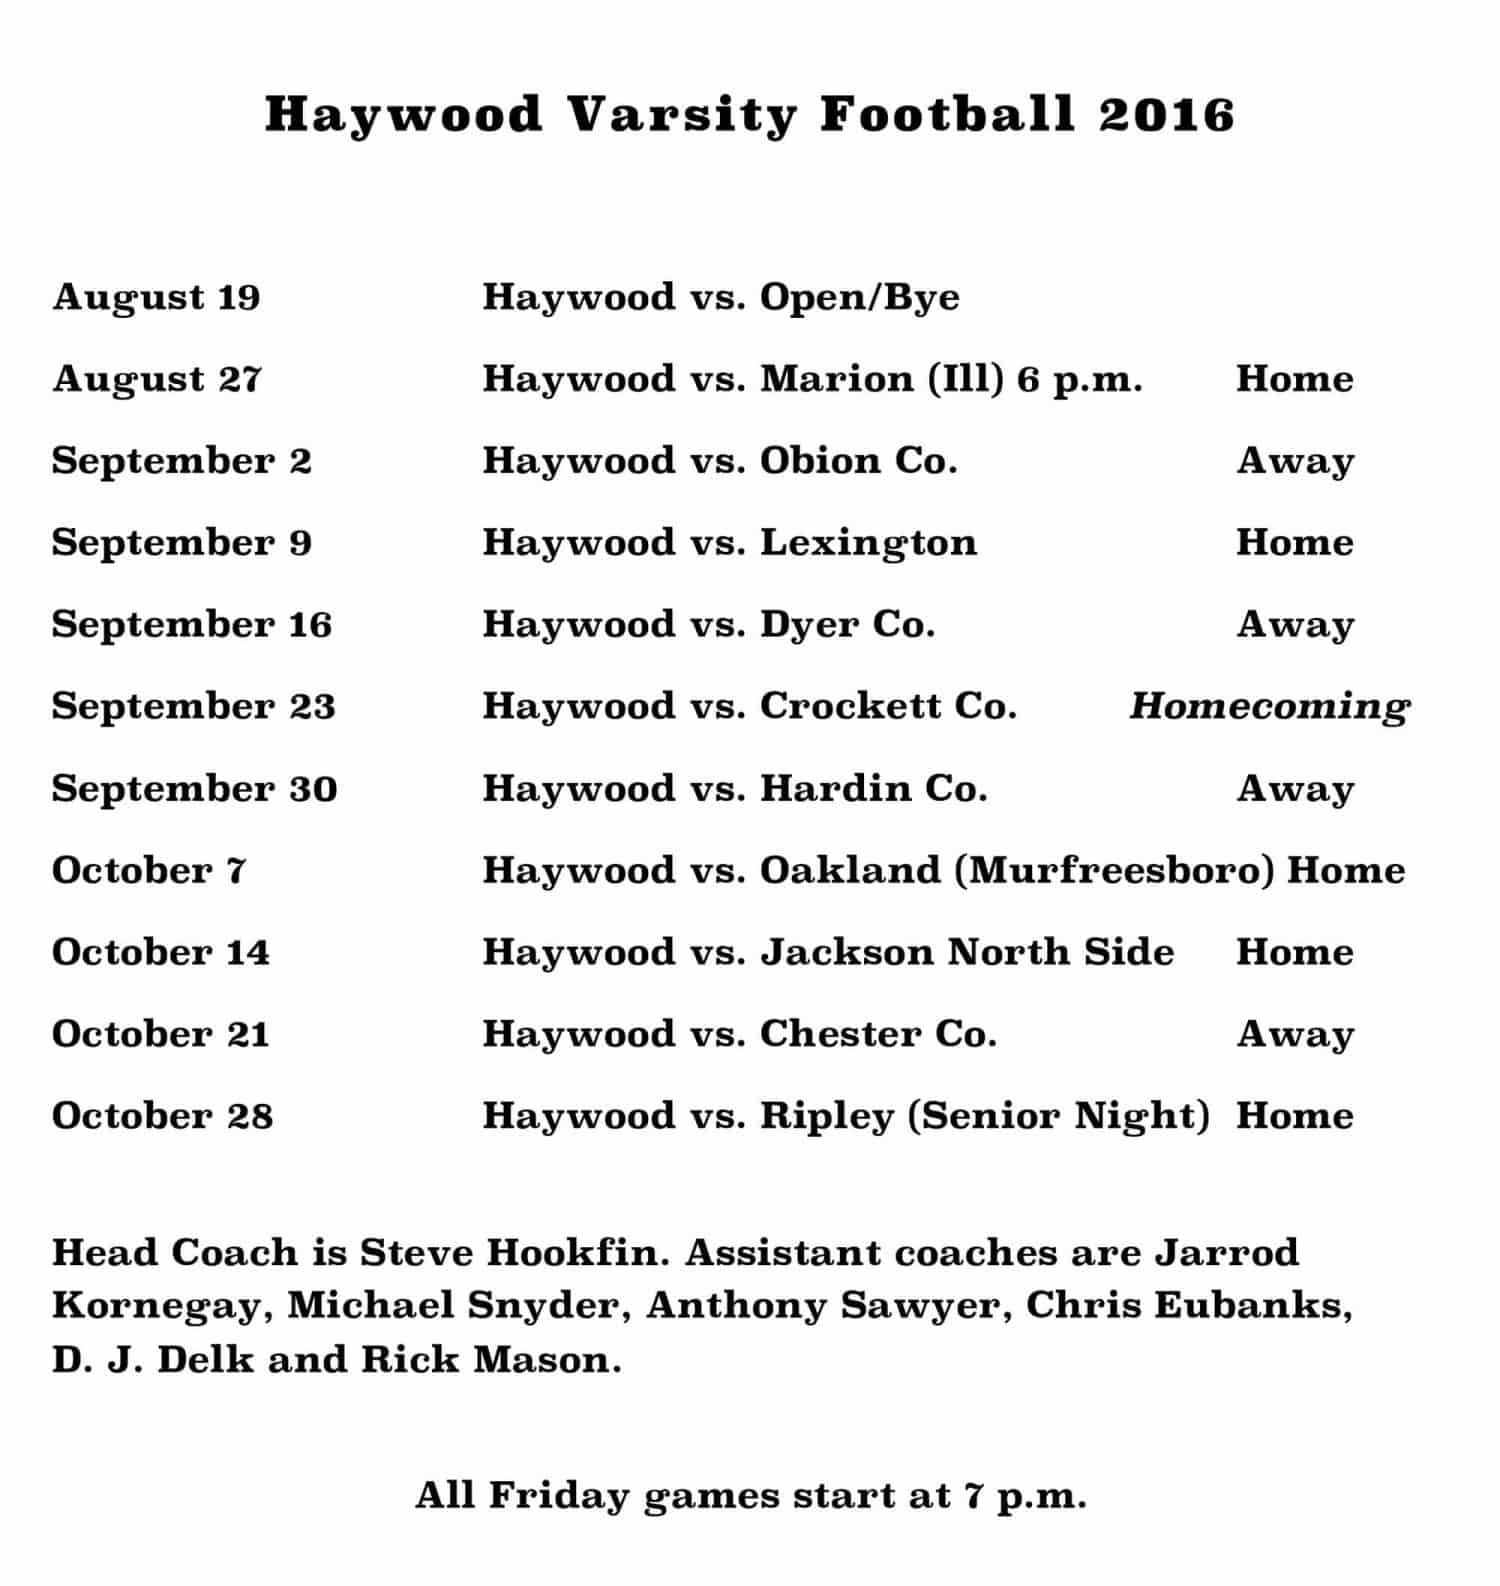 Microsoft Word - Haywood Varsity Football 2016 Schedule (3).docx